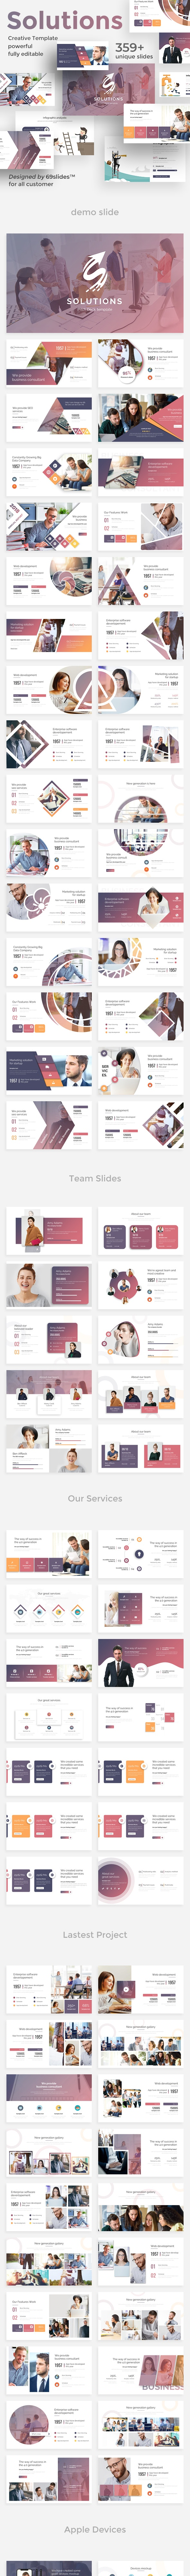 Solutions Pitch Deck Keynote Template - Business Keynote Templates